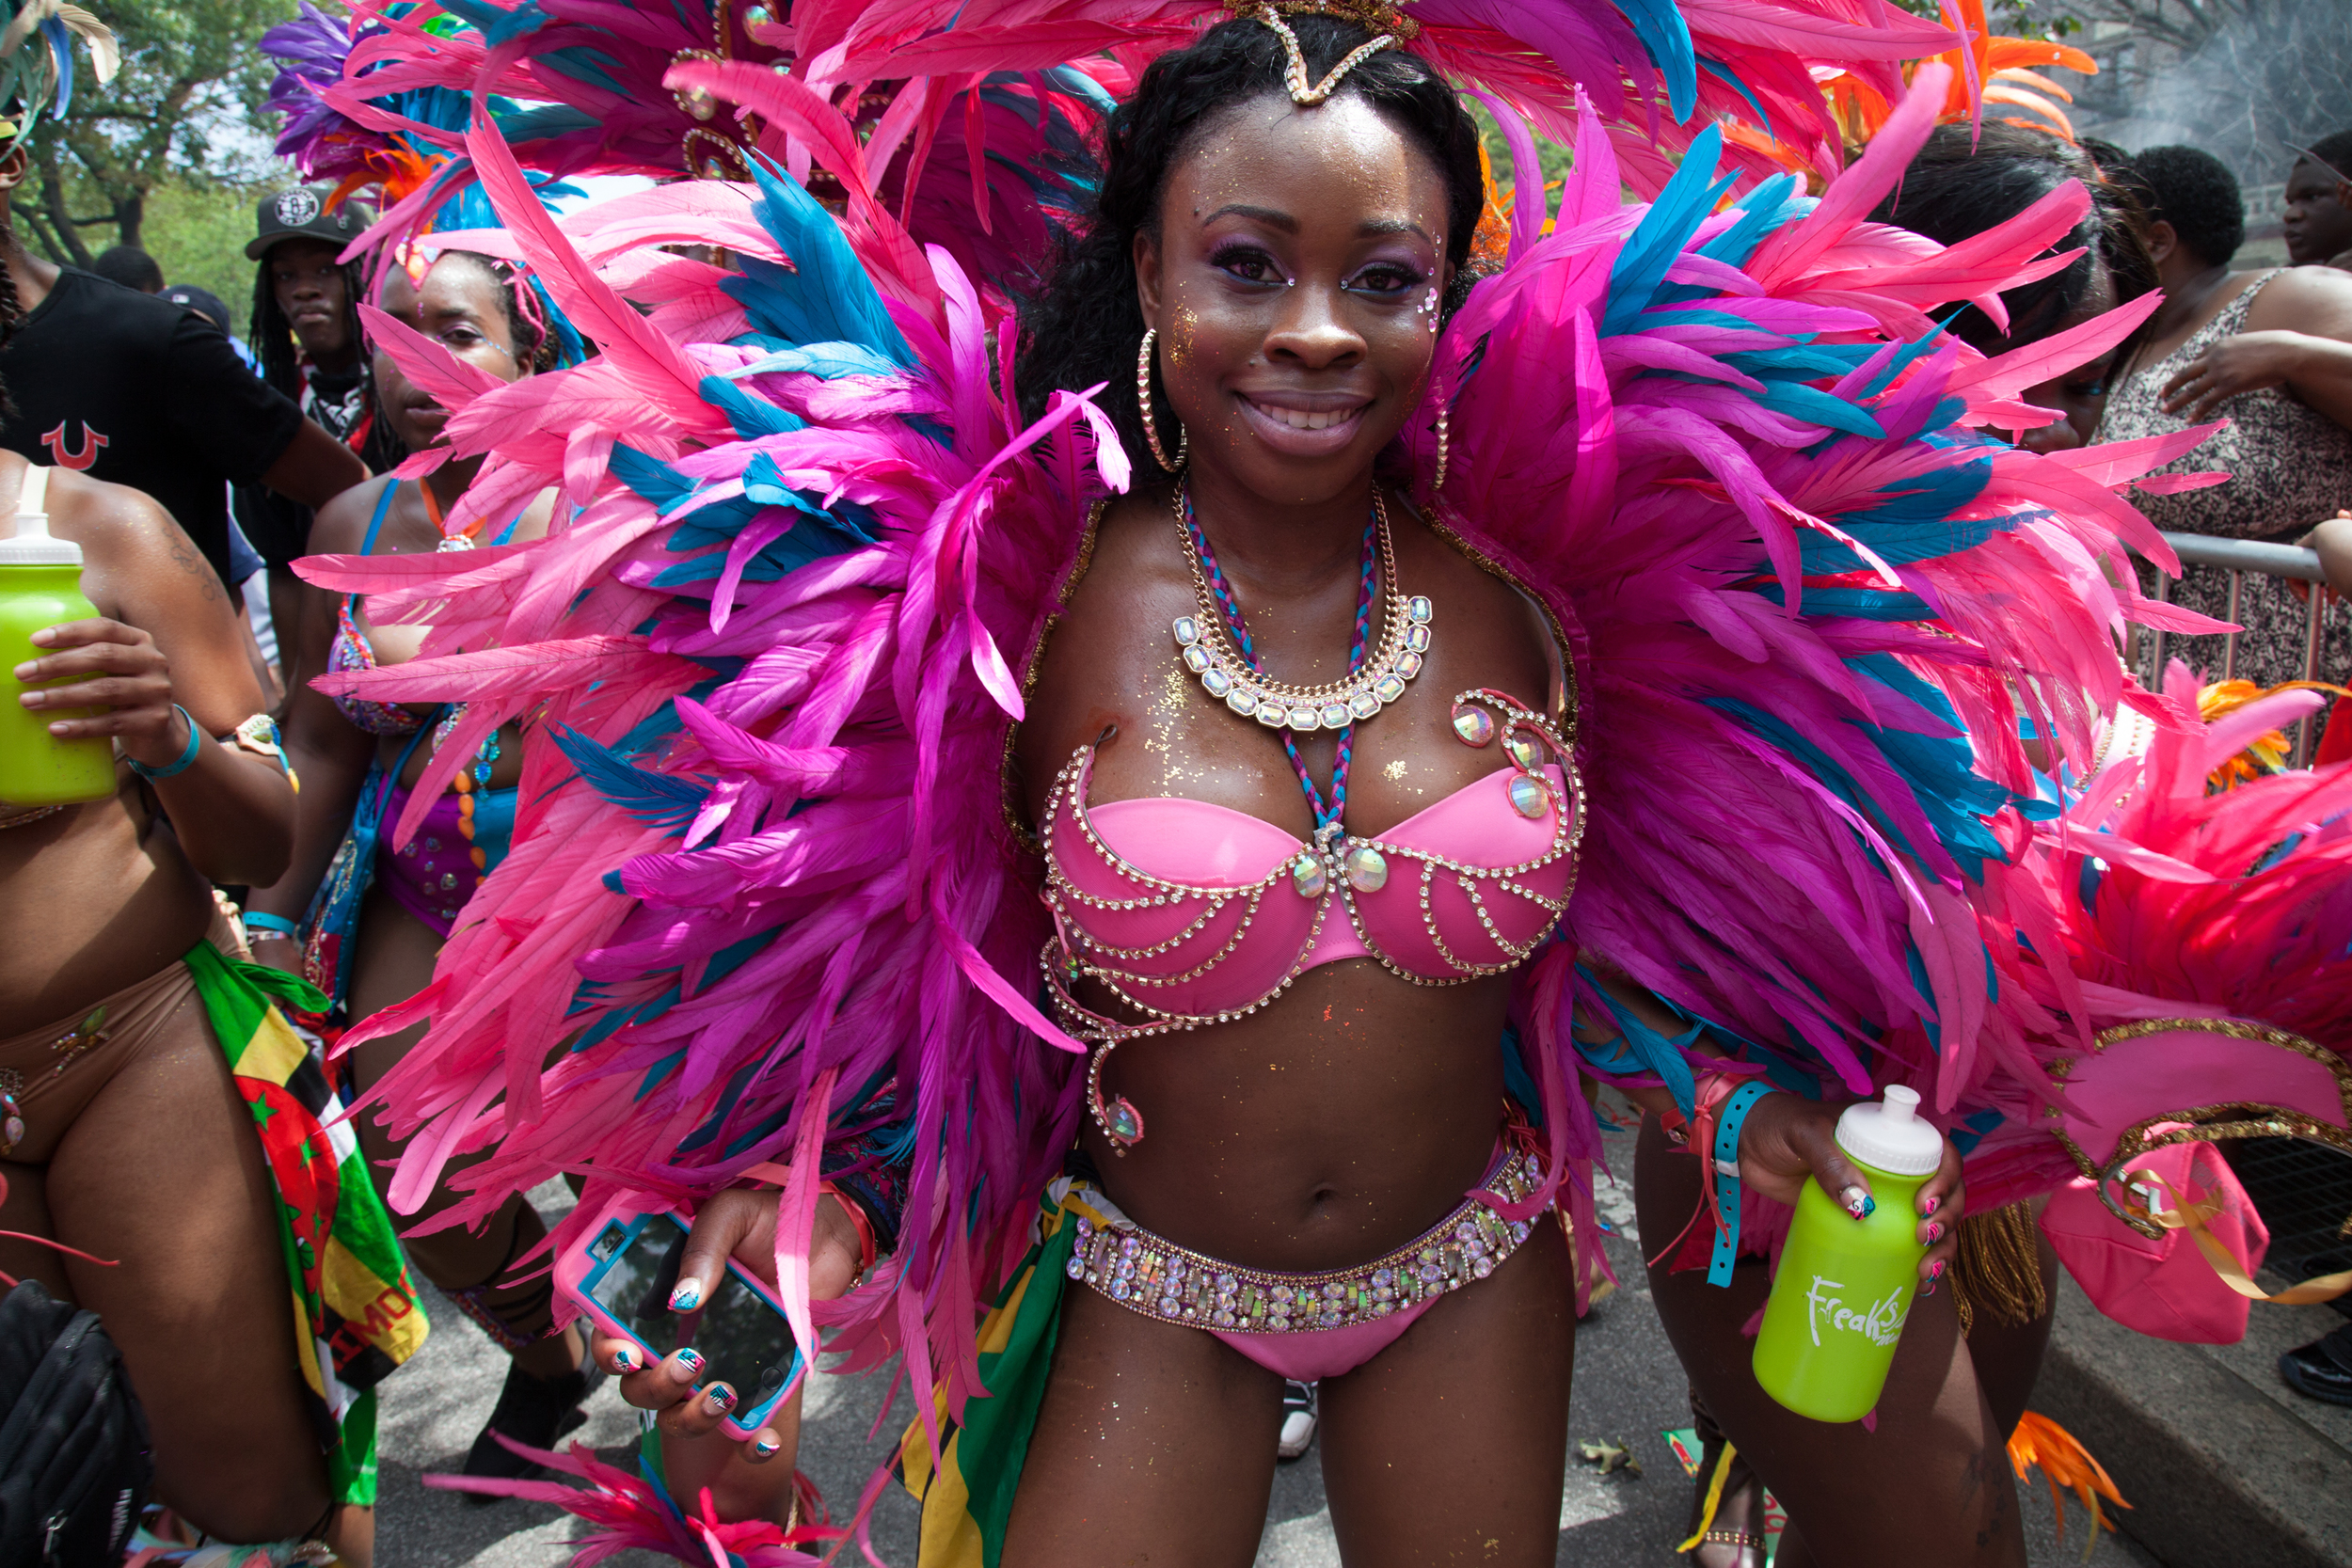 West Indian Parade, NYC, Sept 1, 2014